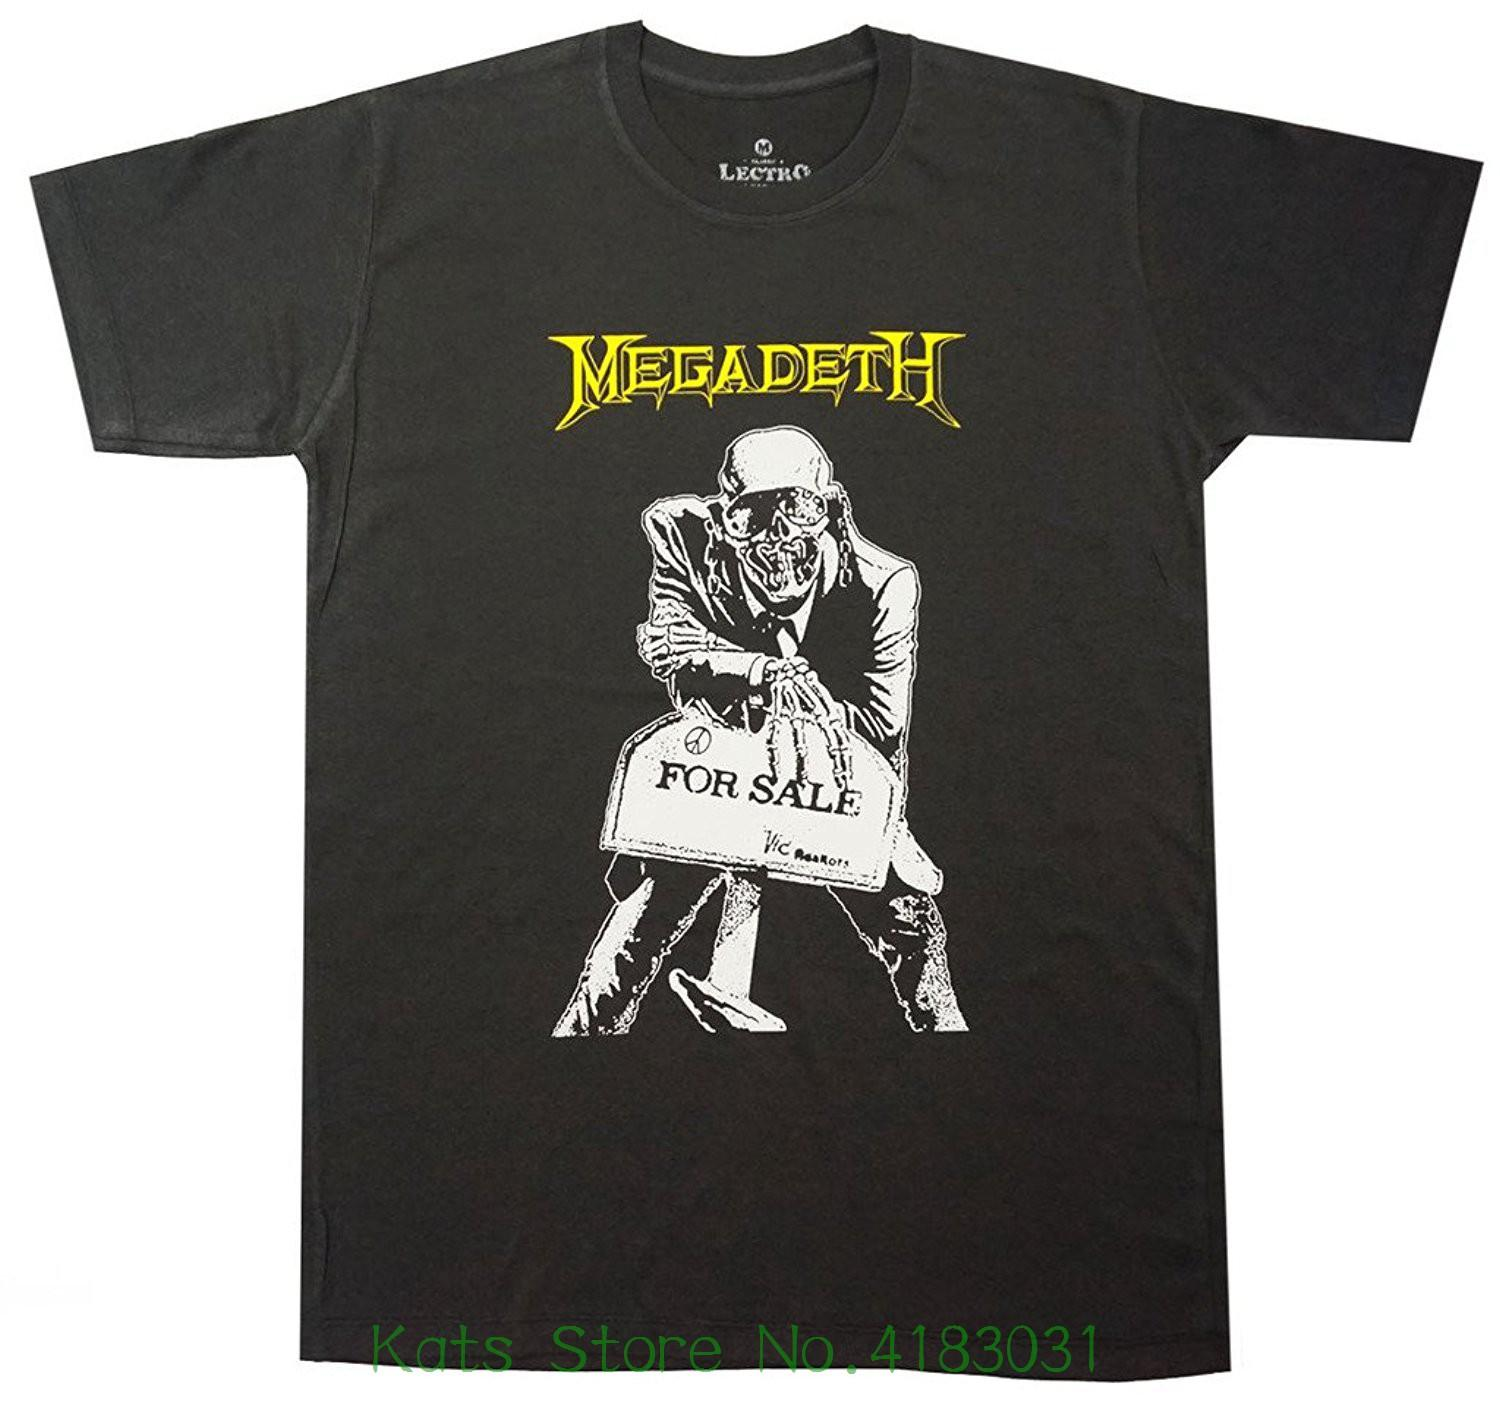 Lectro Megadeth Heavy Metal Band T-shirt